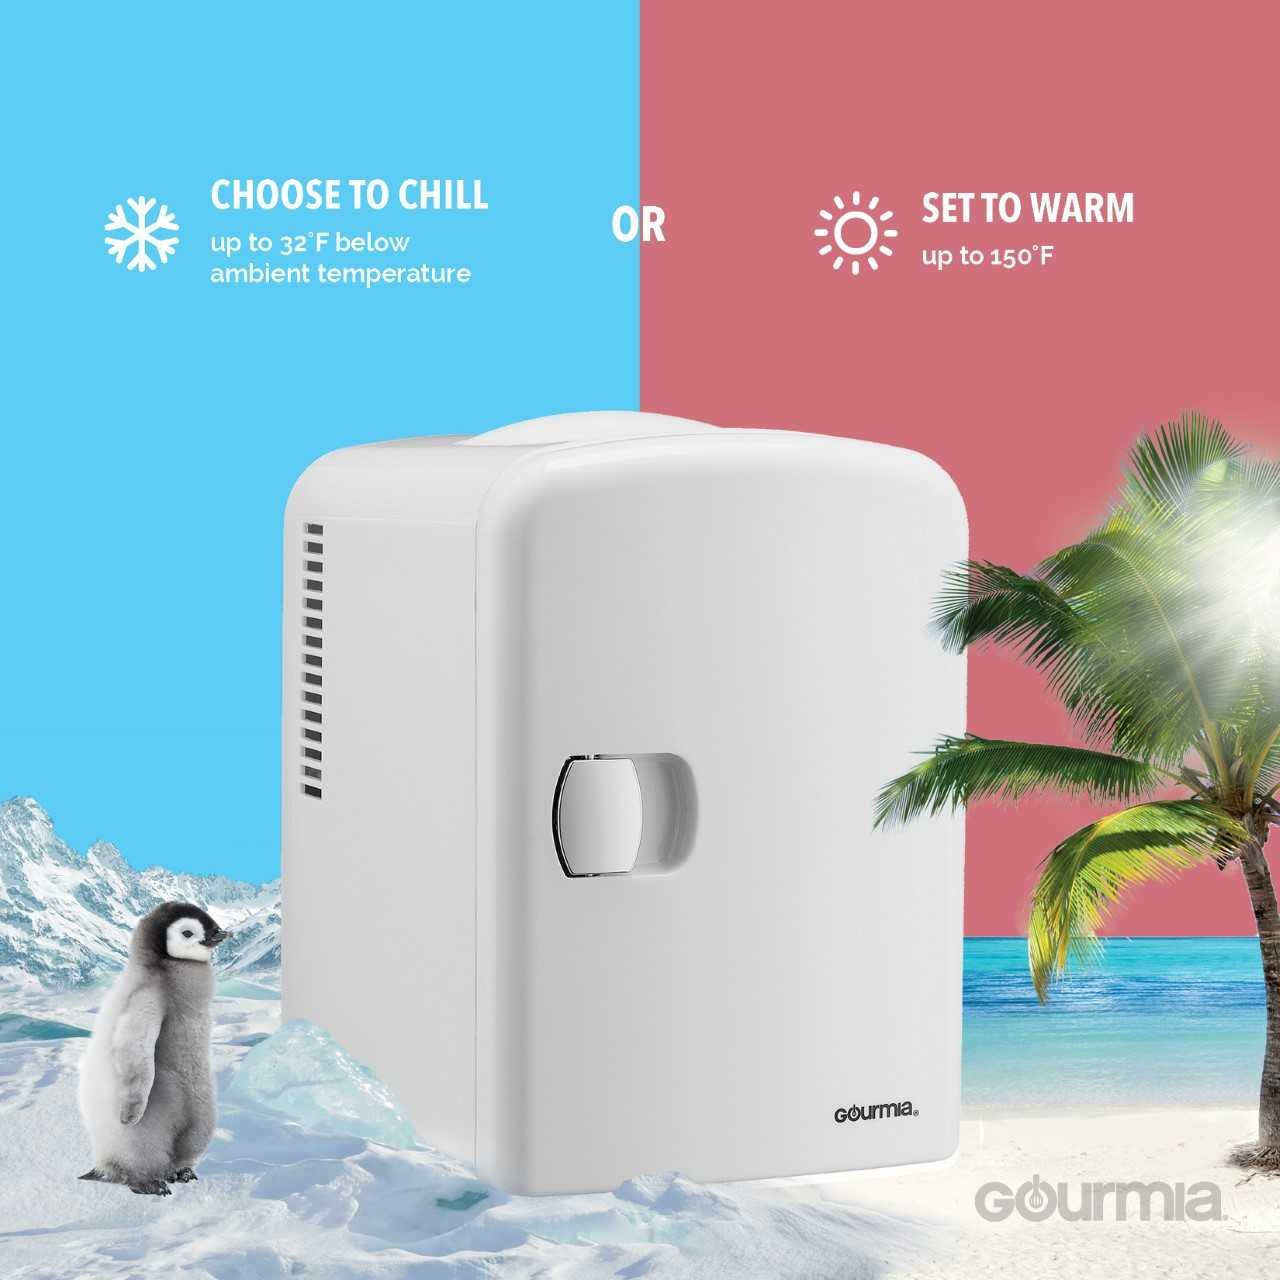 Gourmia GMF600 Thermoelectric Mini Fridge Cooler and Warmer - 4 Liter/6 Can - For Home,Office, Car, Dorm or Boat - Compact & Portable - AC & DC Power Cords - White by Gourmia (Image #3)